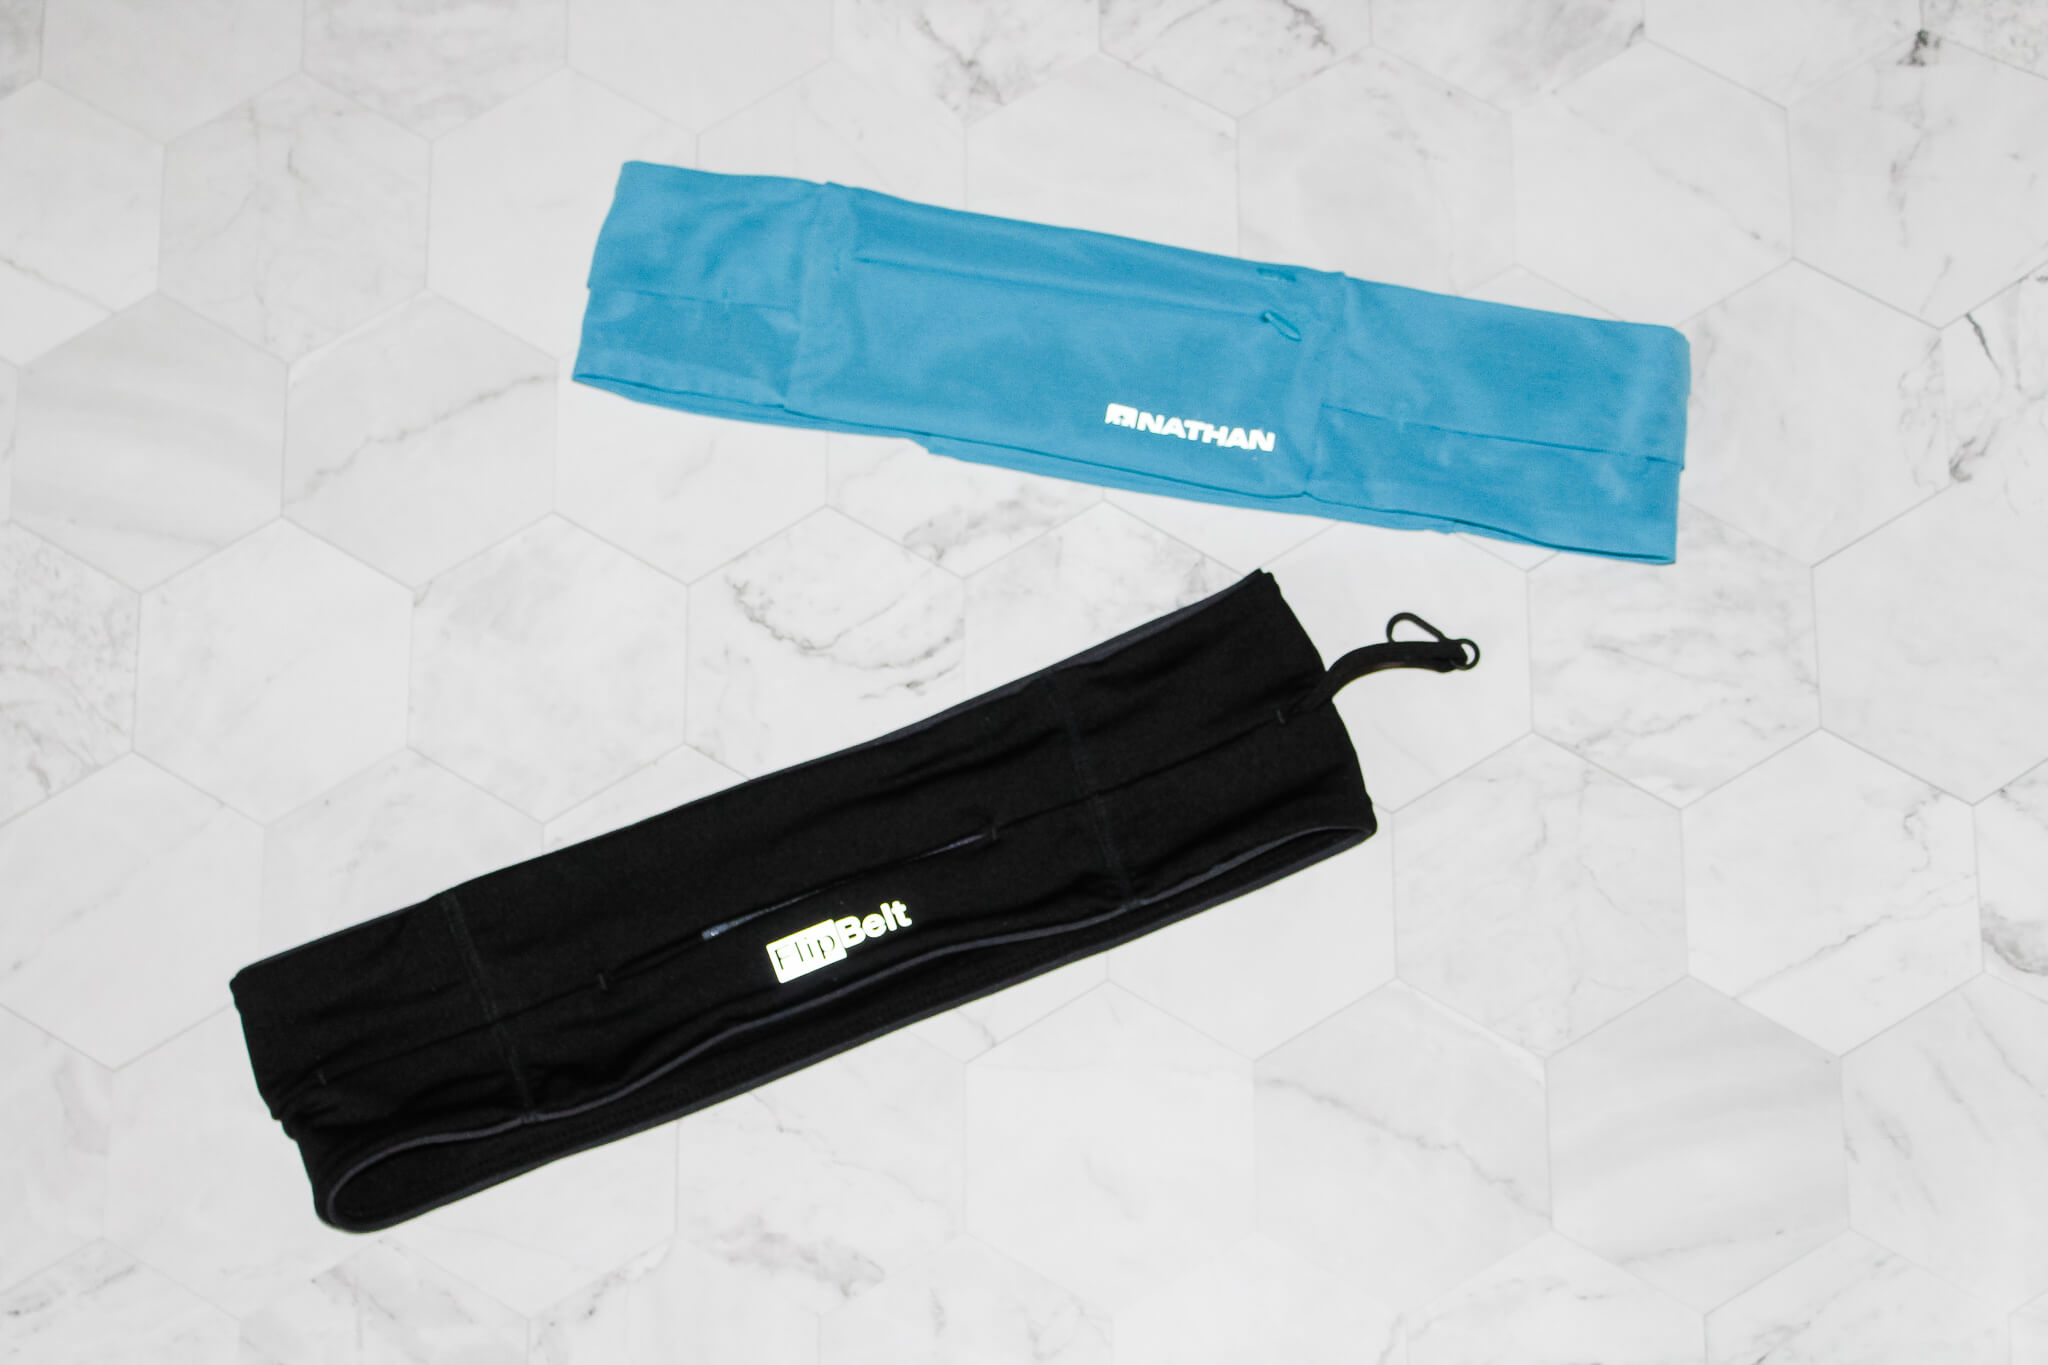 Nathan Zipster Lite Review: How It Compares To FlipBelt